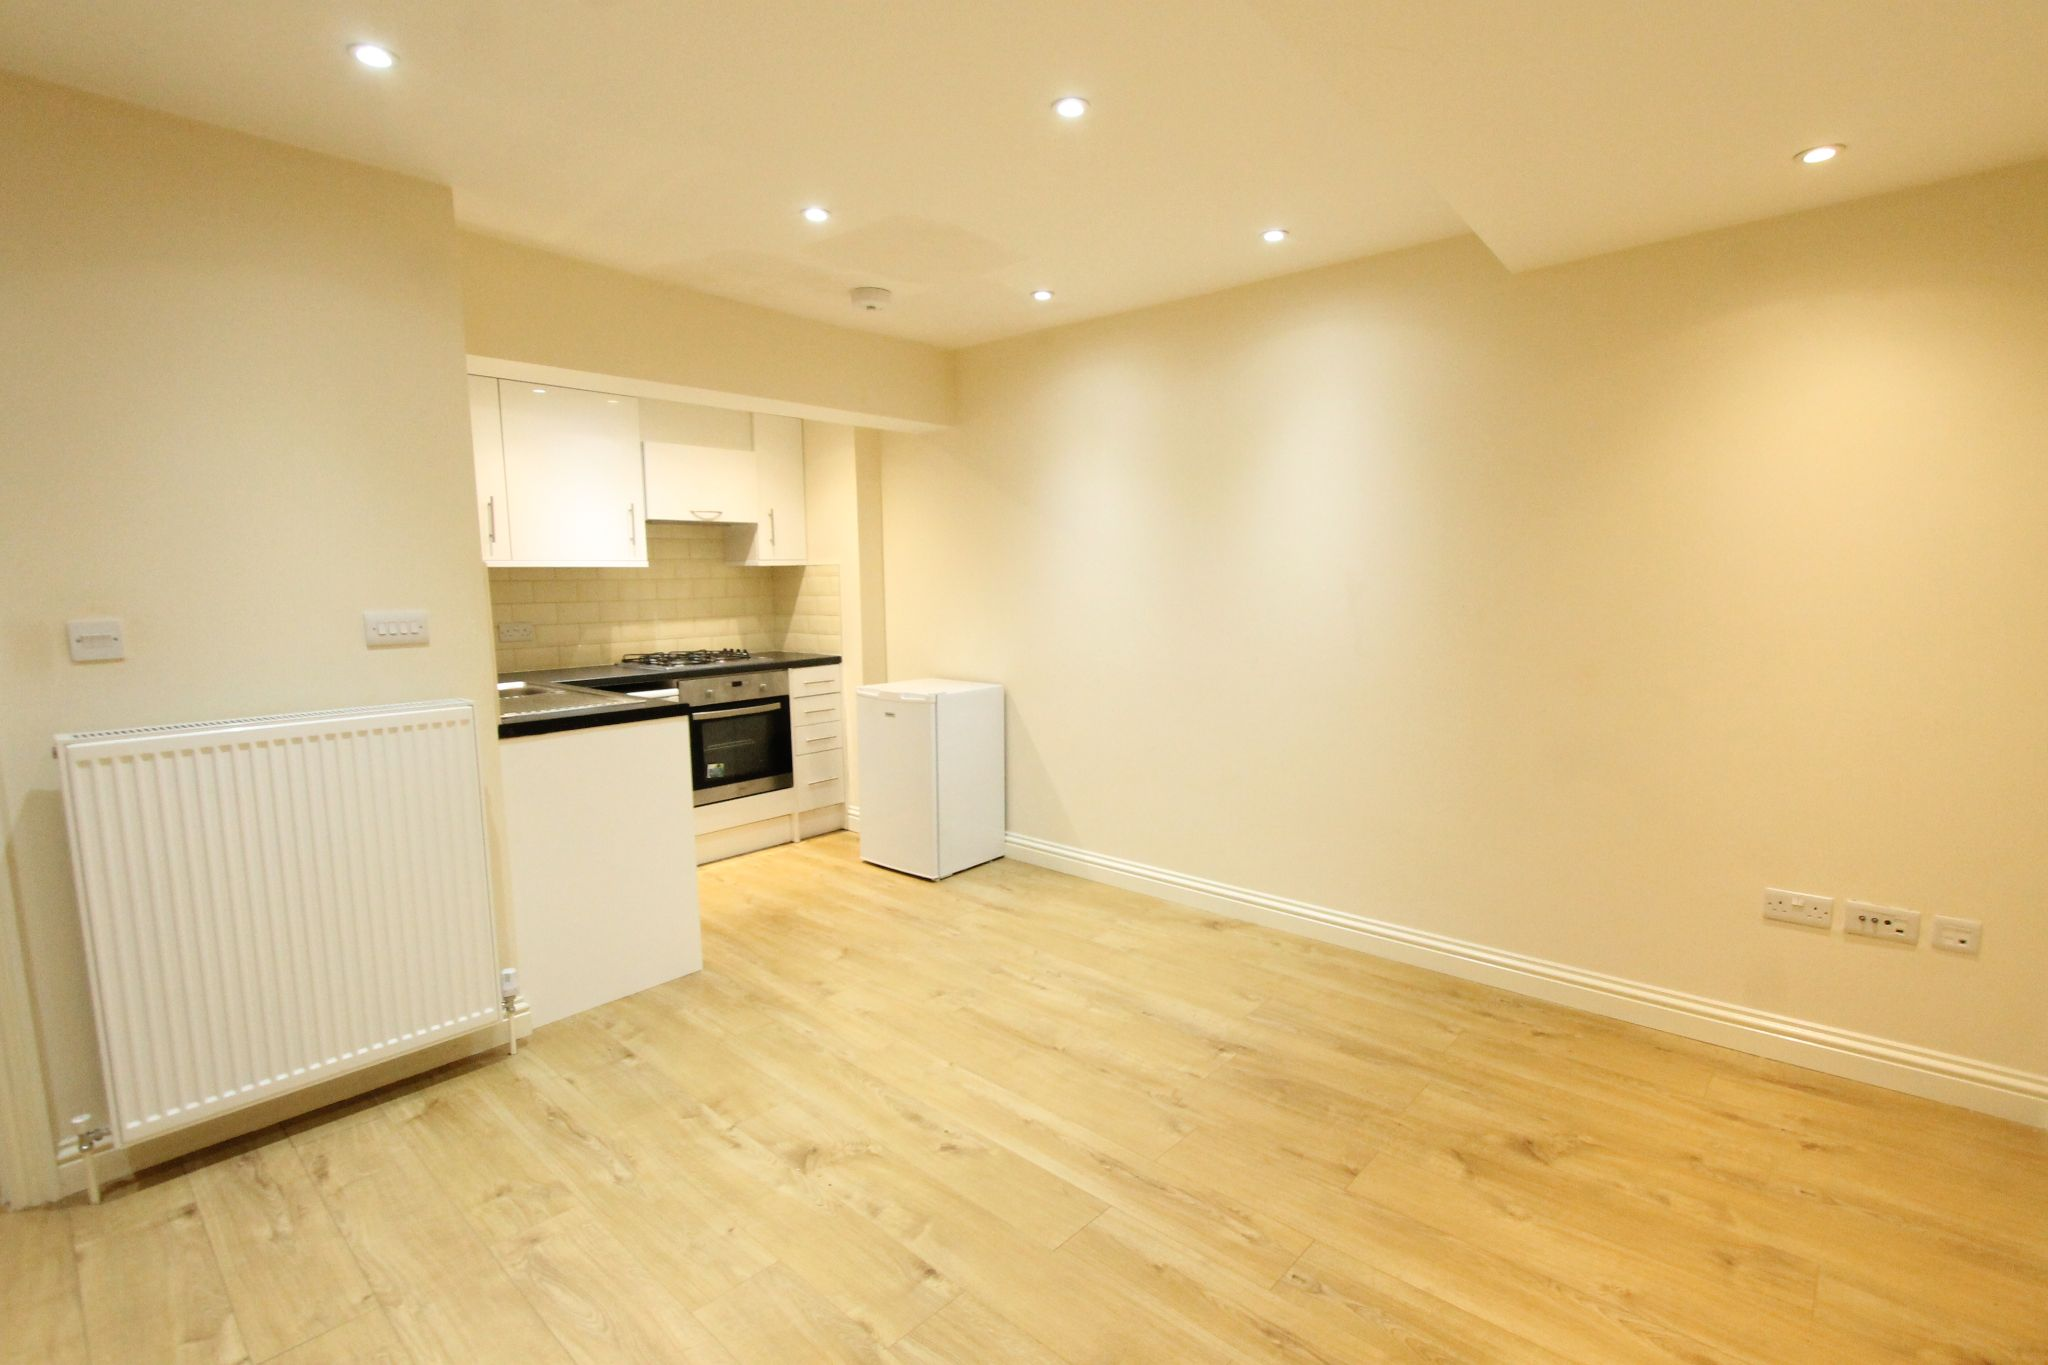 2 bedroom apartment flat/apartment To Let in Sutton - Photograph 5.